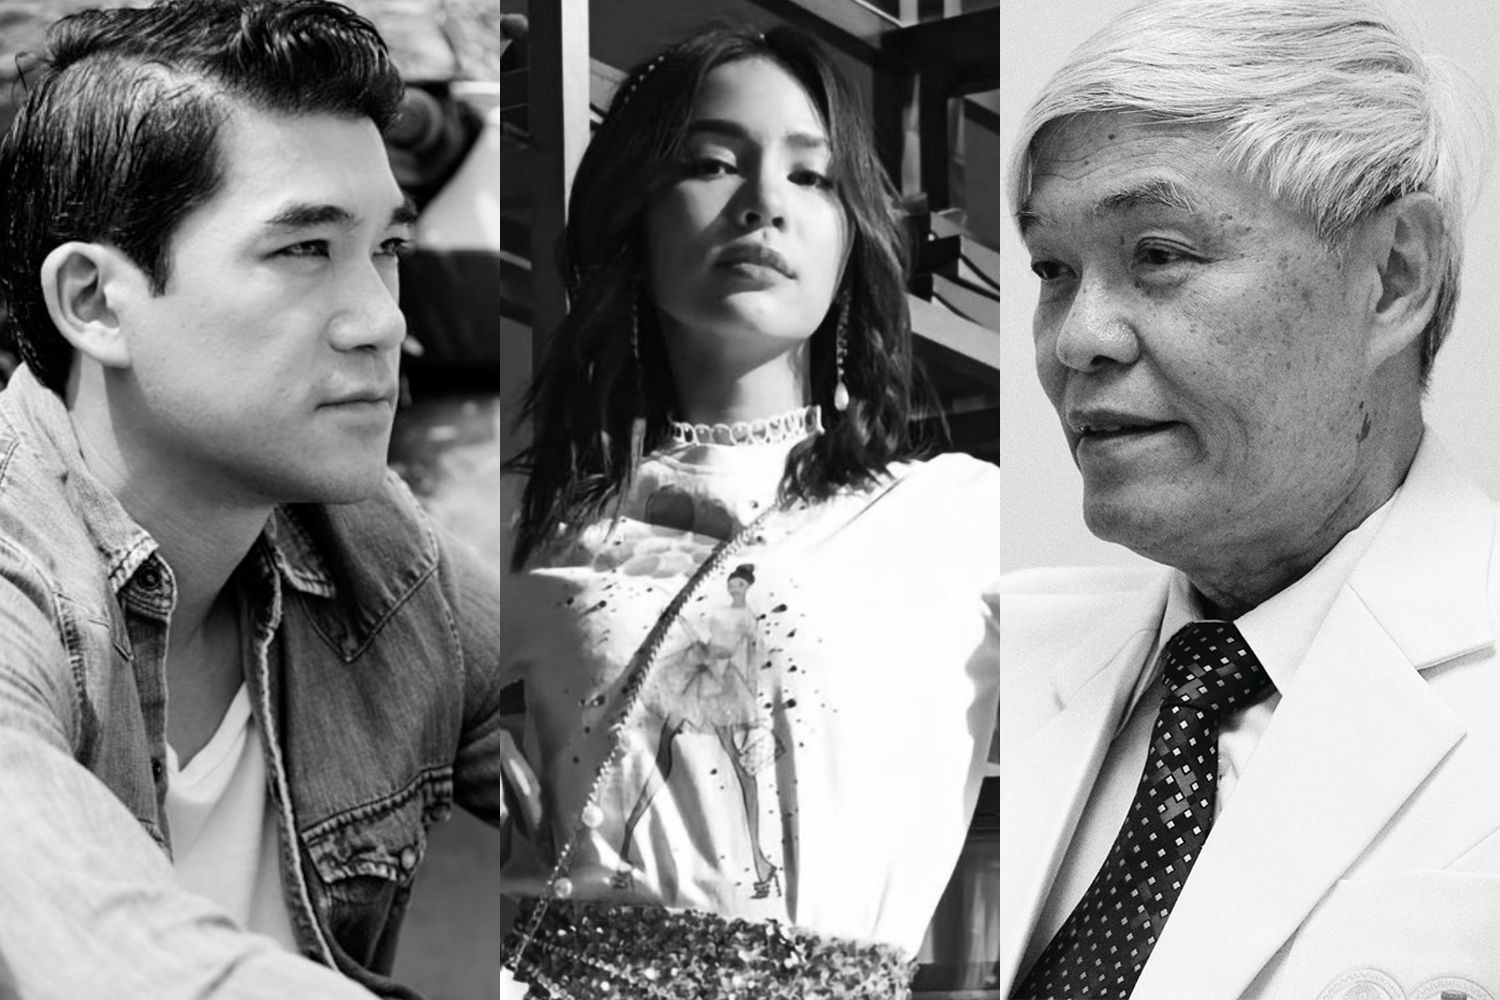 Tatler Heroes: 5 Thais Leading The Fight Against COVID-19